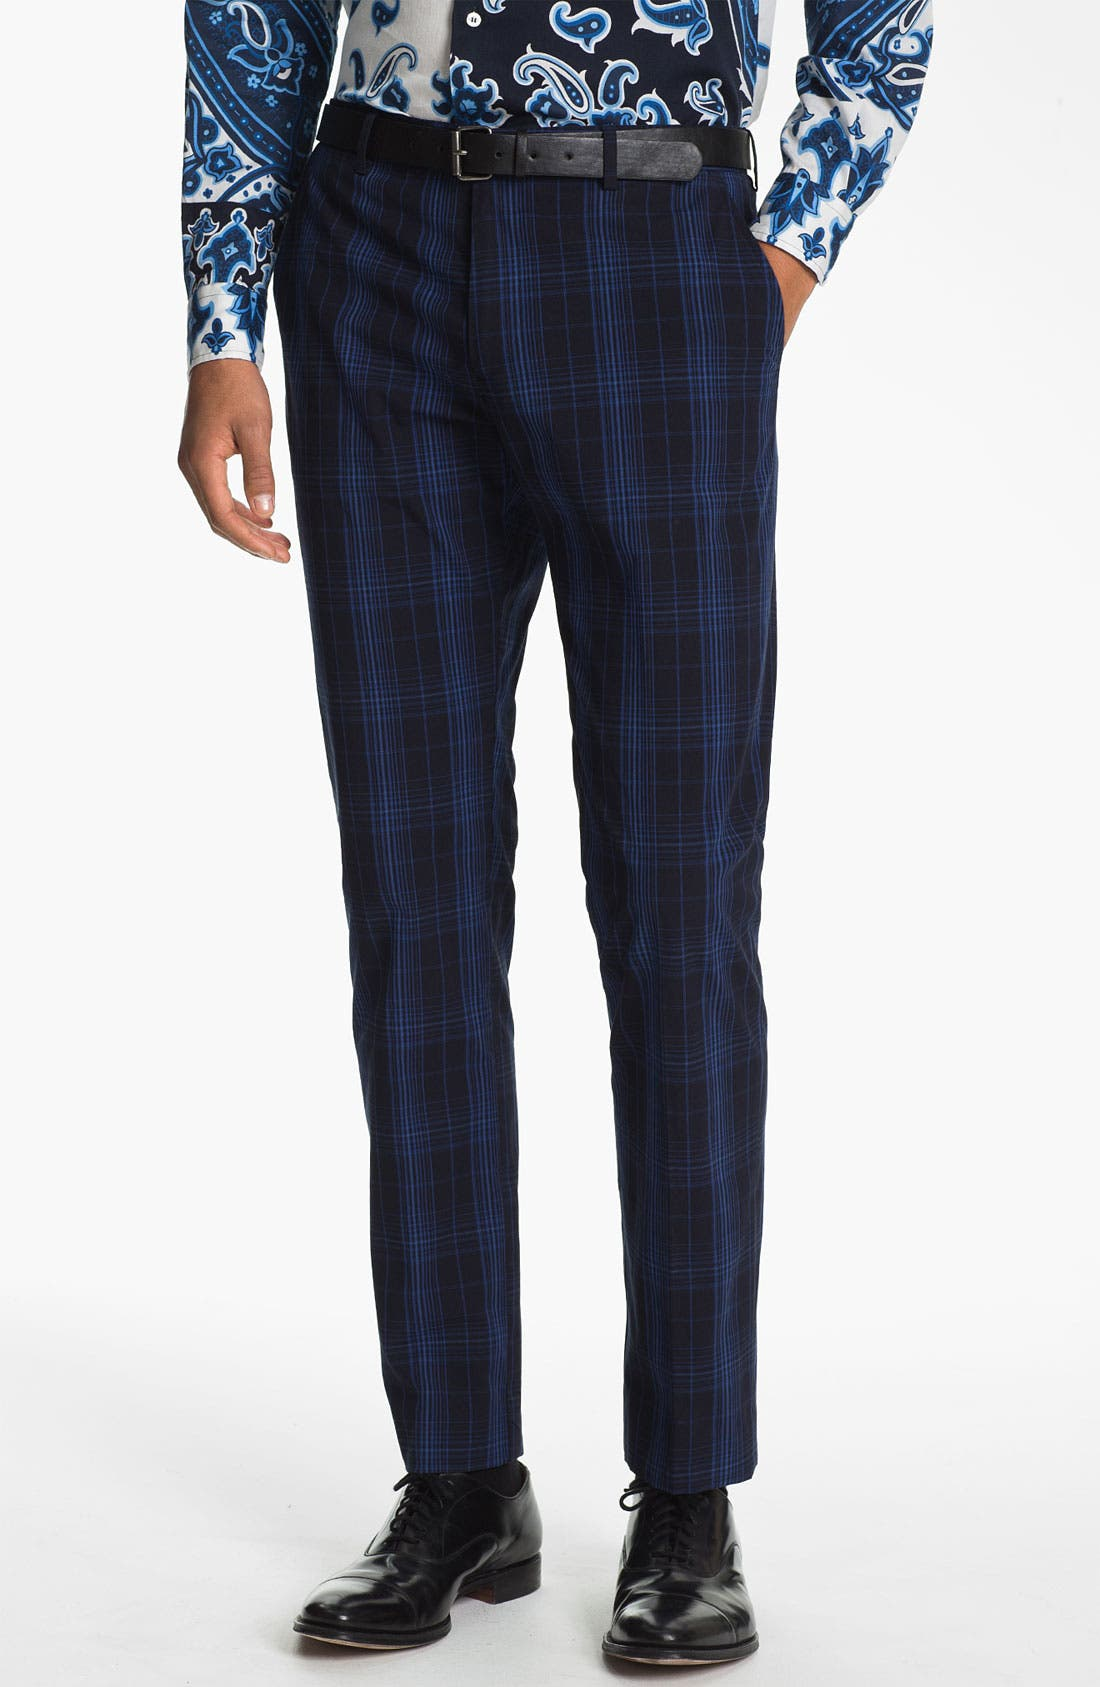 Alternate Image 1 Selected - Etro 'Mexico' Slim Fit Plaid Trousers